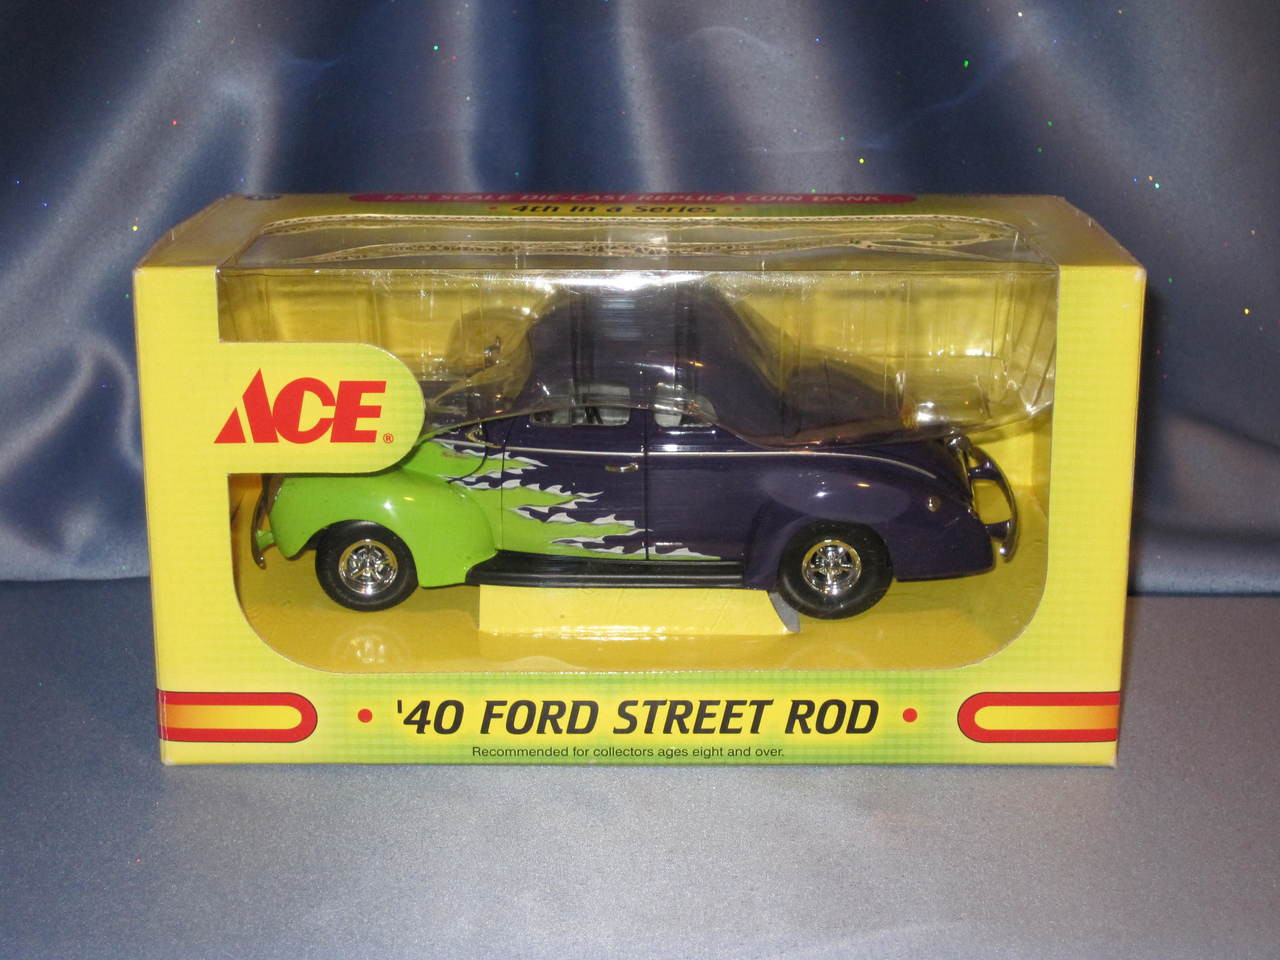 First Gear Ace Hardware 1940 Ford Street Rod Coin Bank - Now and ...